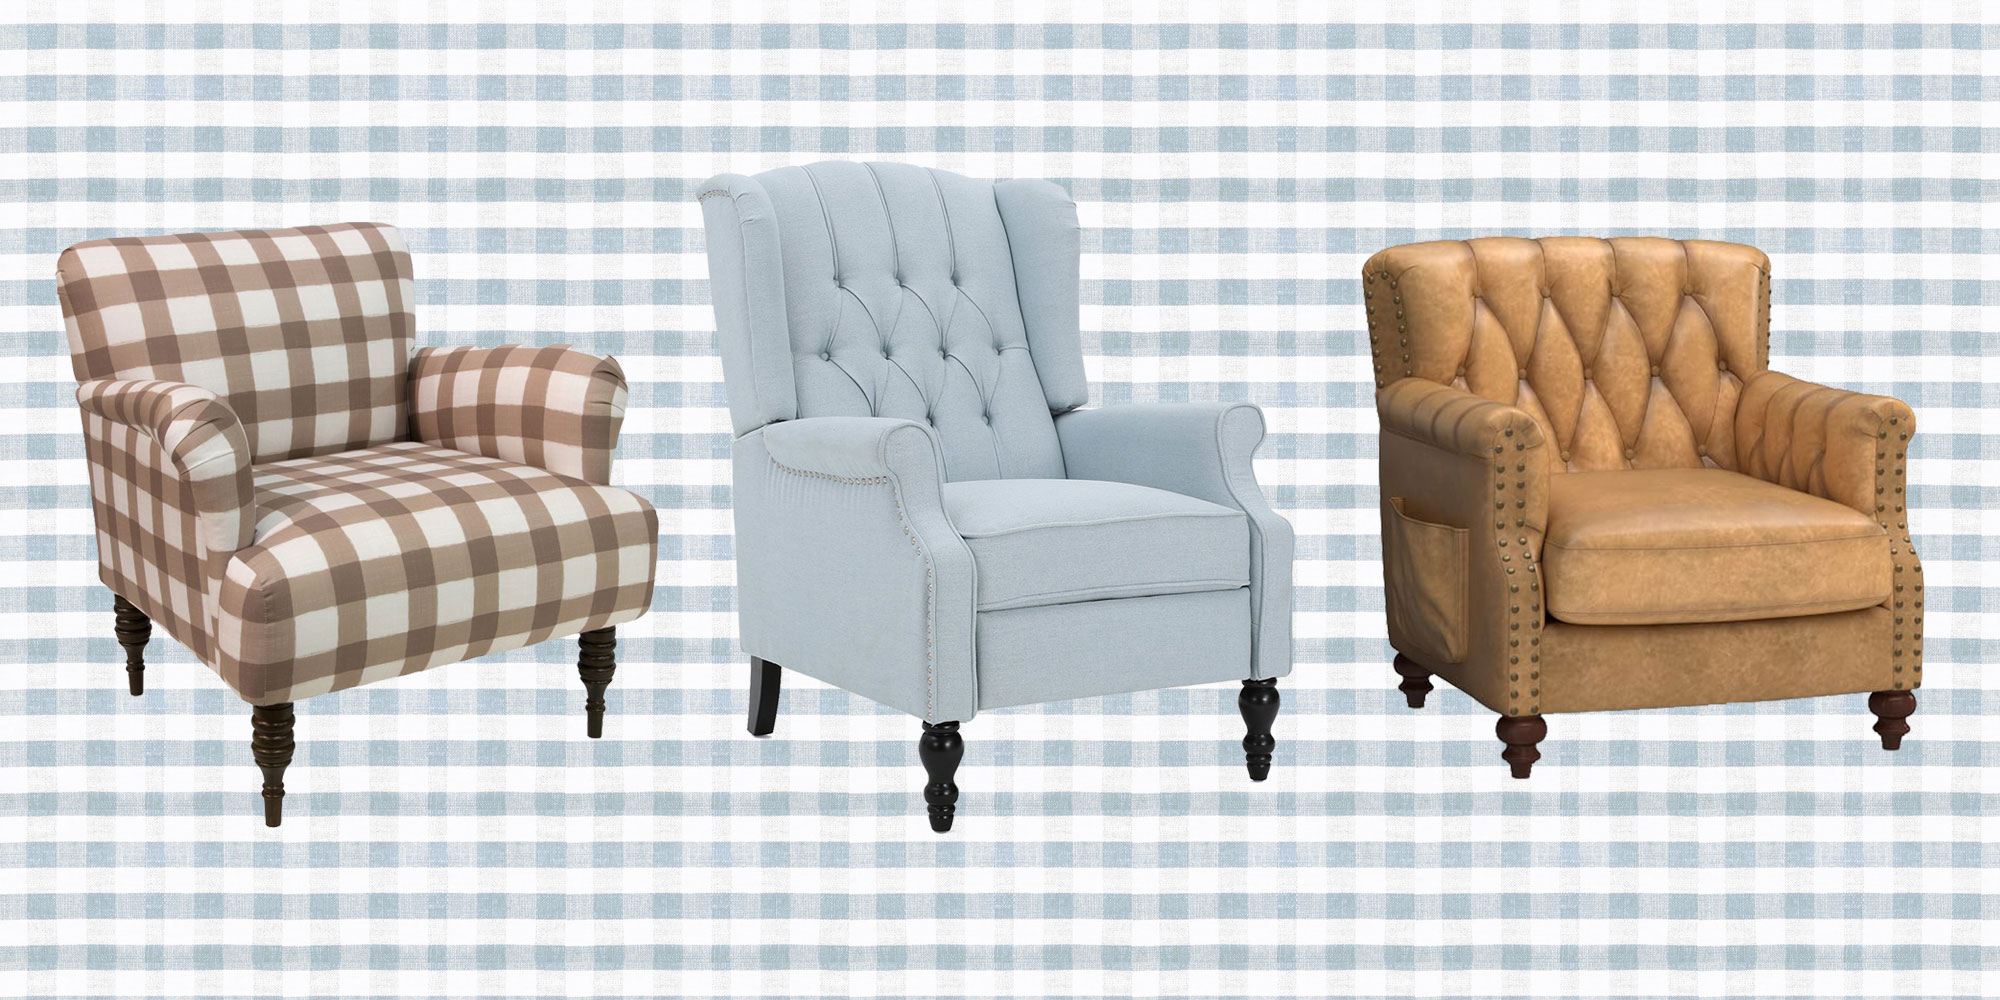 10 Best Cozy Chairs For Living Rooms  Most Comfortable